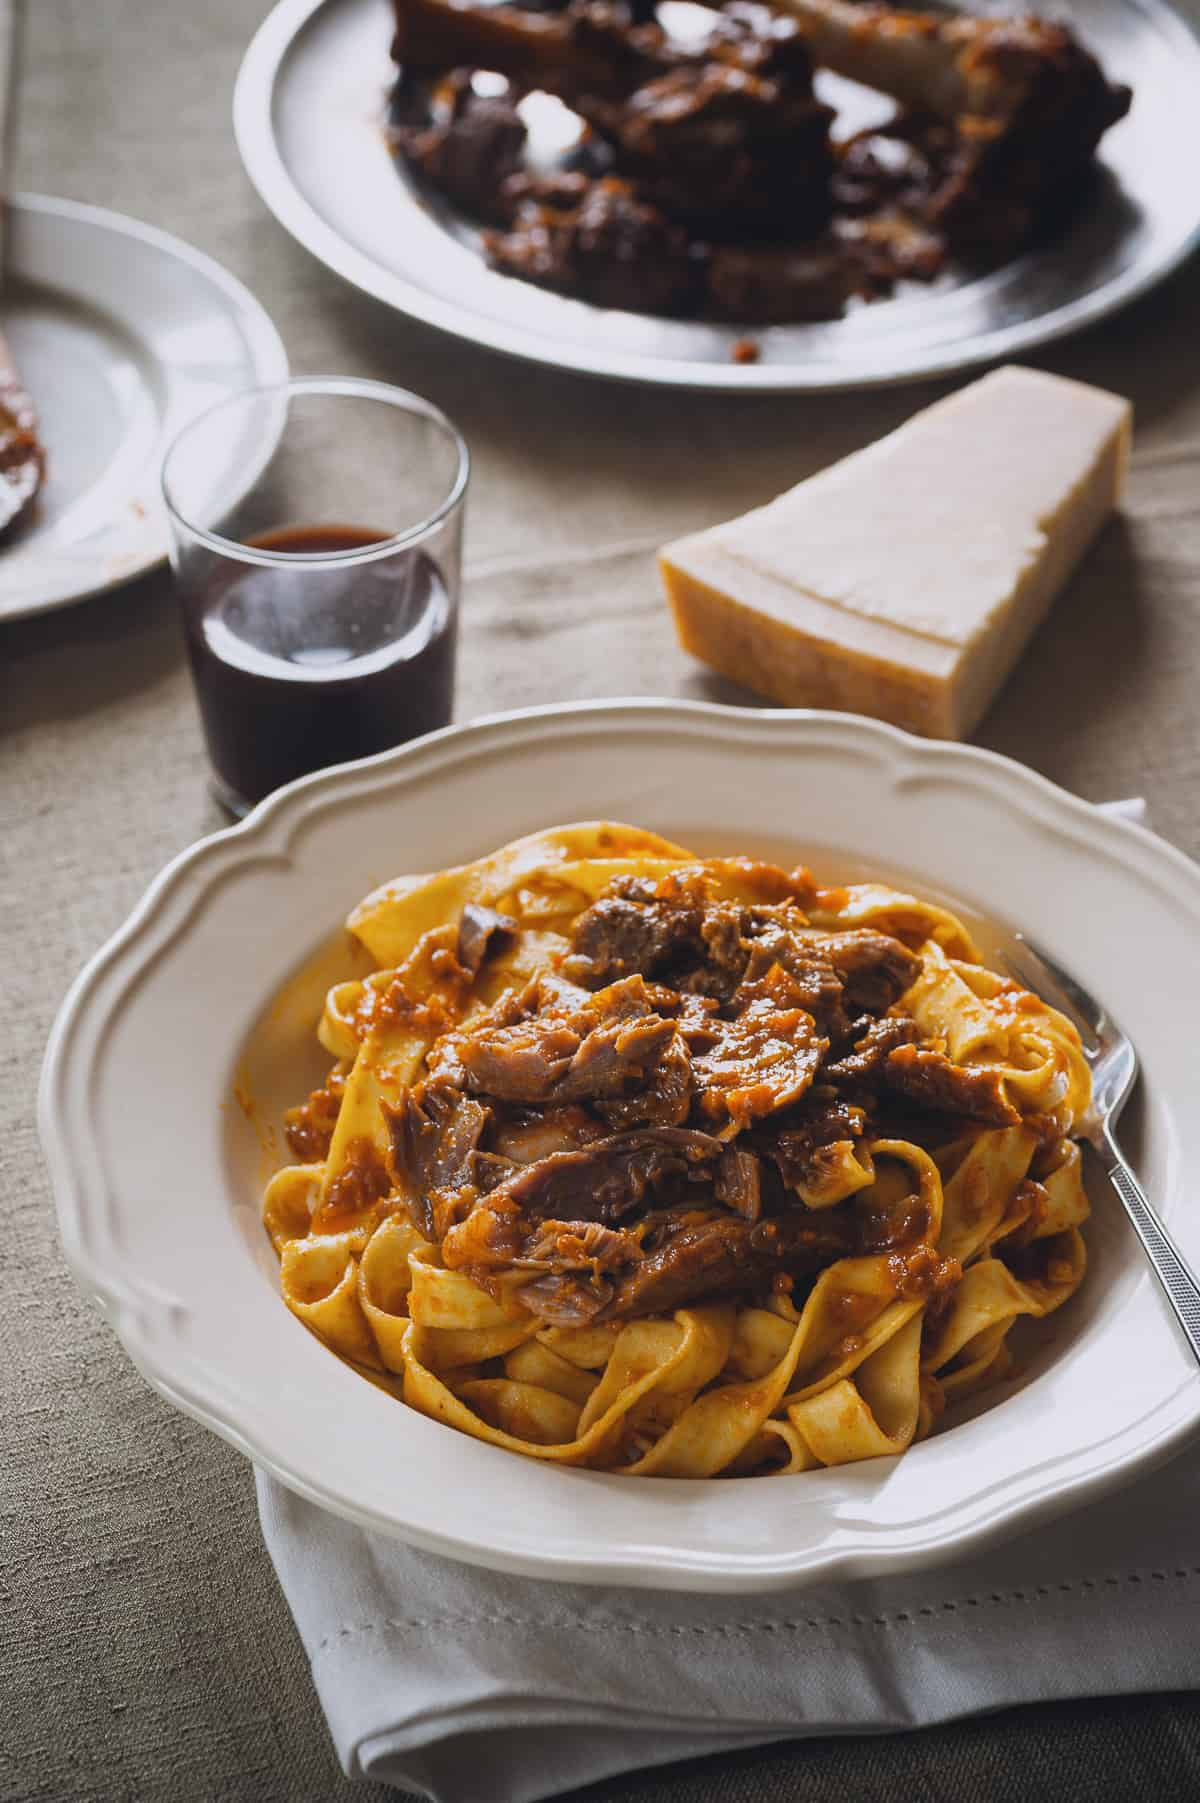 a plate of pasta topped with a meat sauce made from lamb shanks